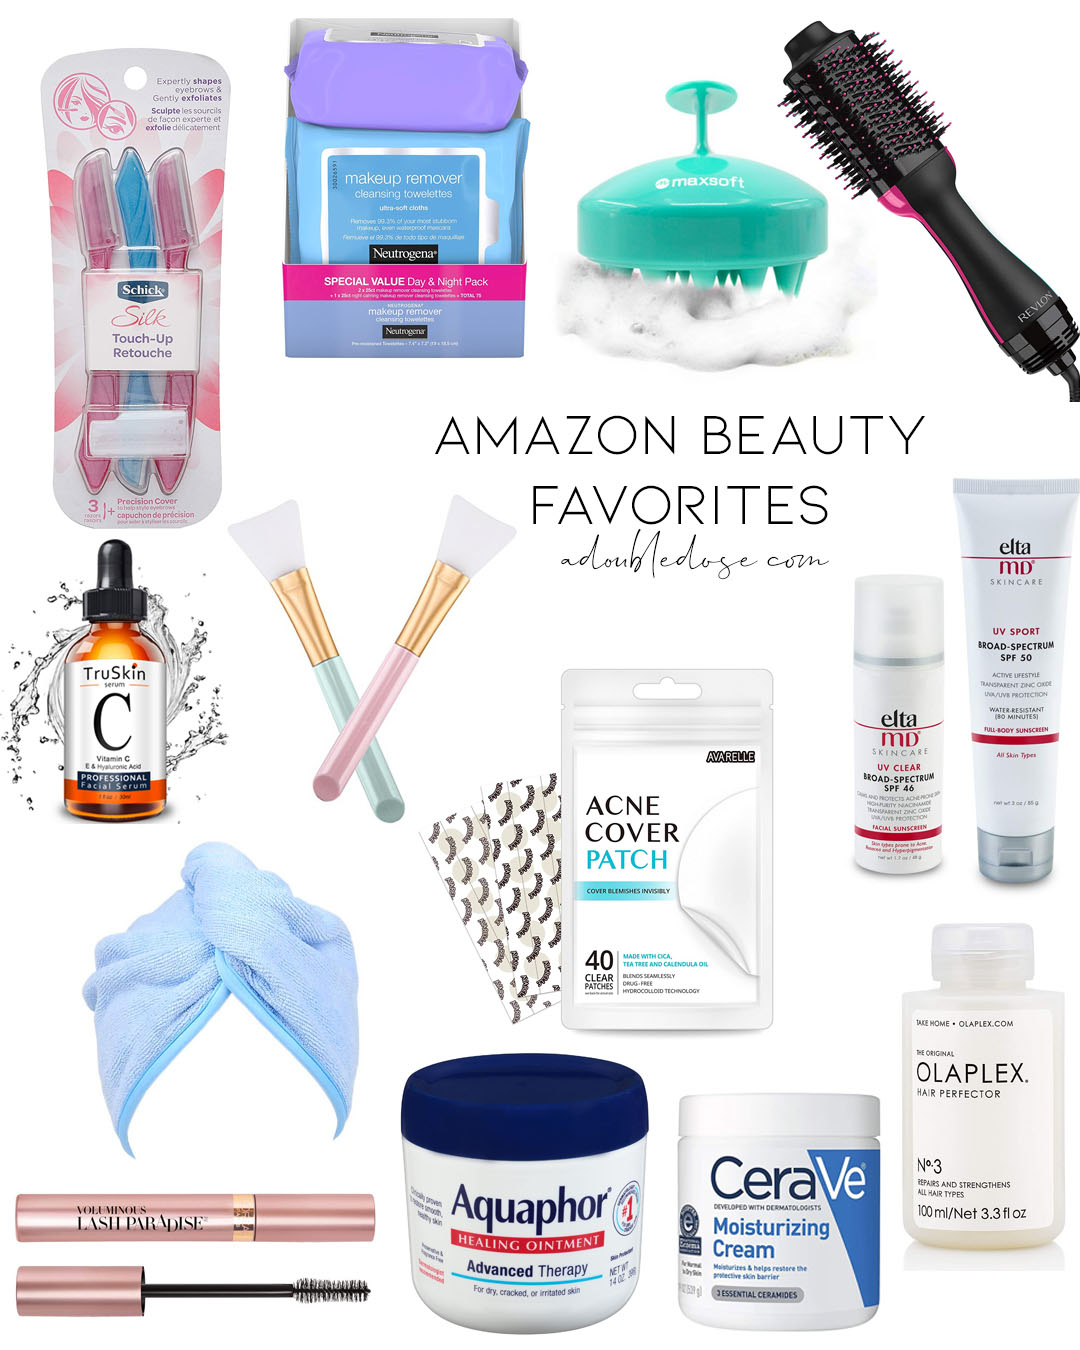 lifestyle and fashion blogger alexis belbel sharing her favorite amazon beauty purchases: neutrogena makeup remover wipes, eltaMD sunscreen, scalp massager, zit stickers | adoubledose.com